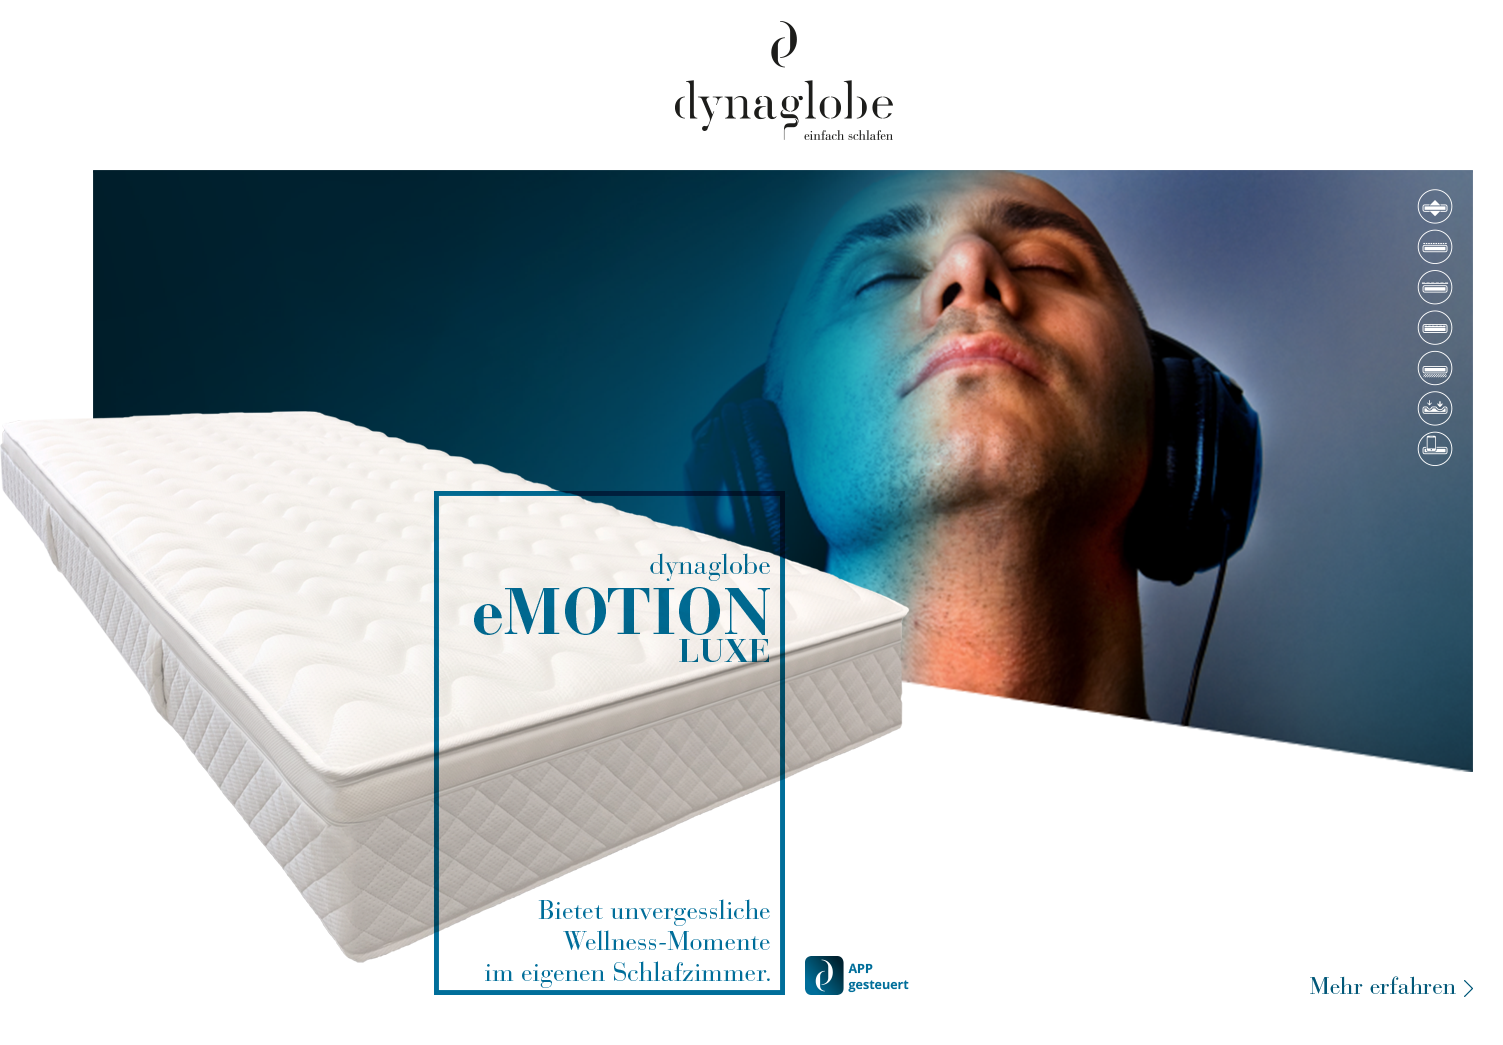 dynaglobe eMOTION Luxe